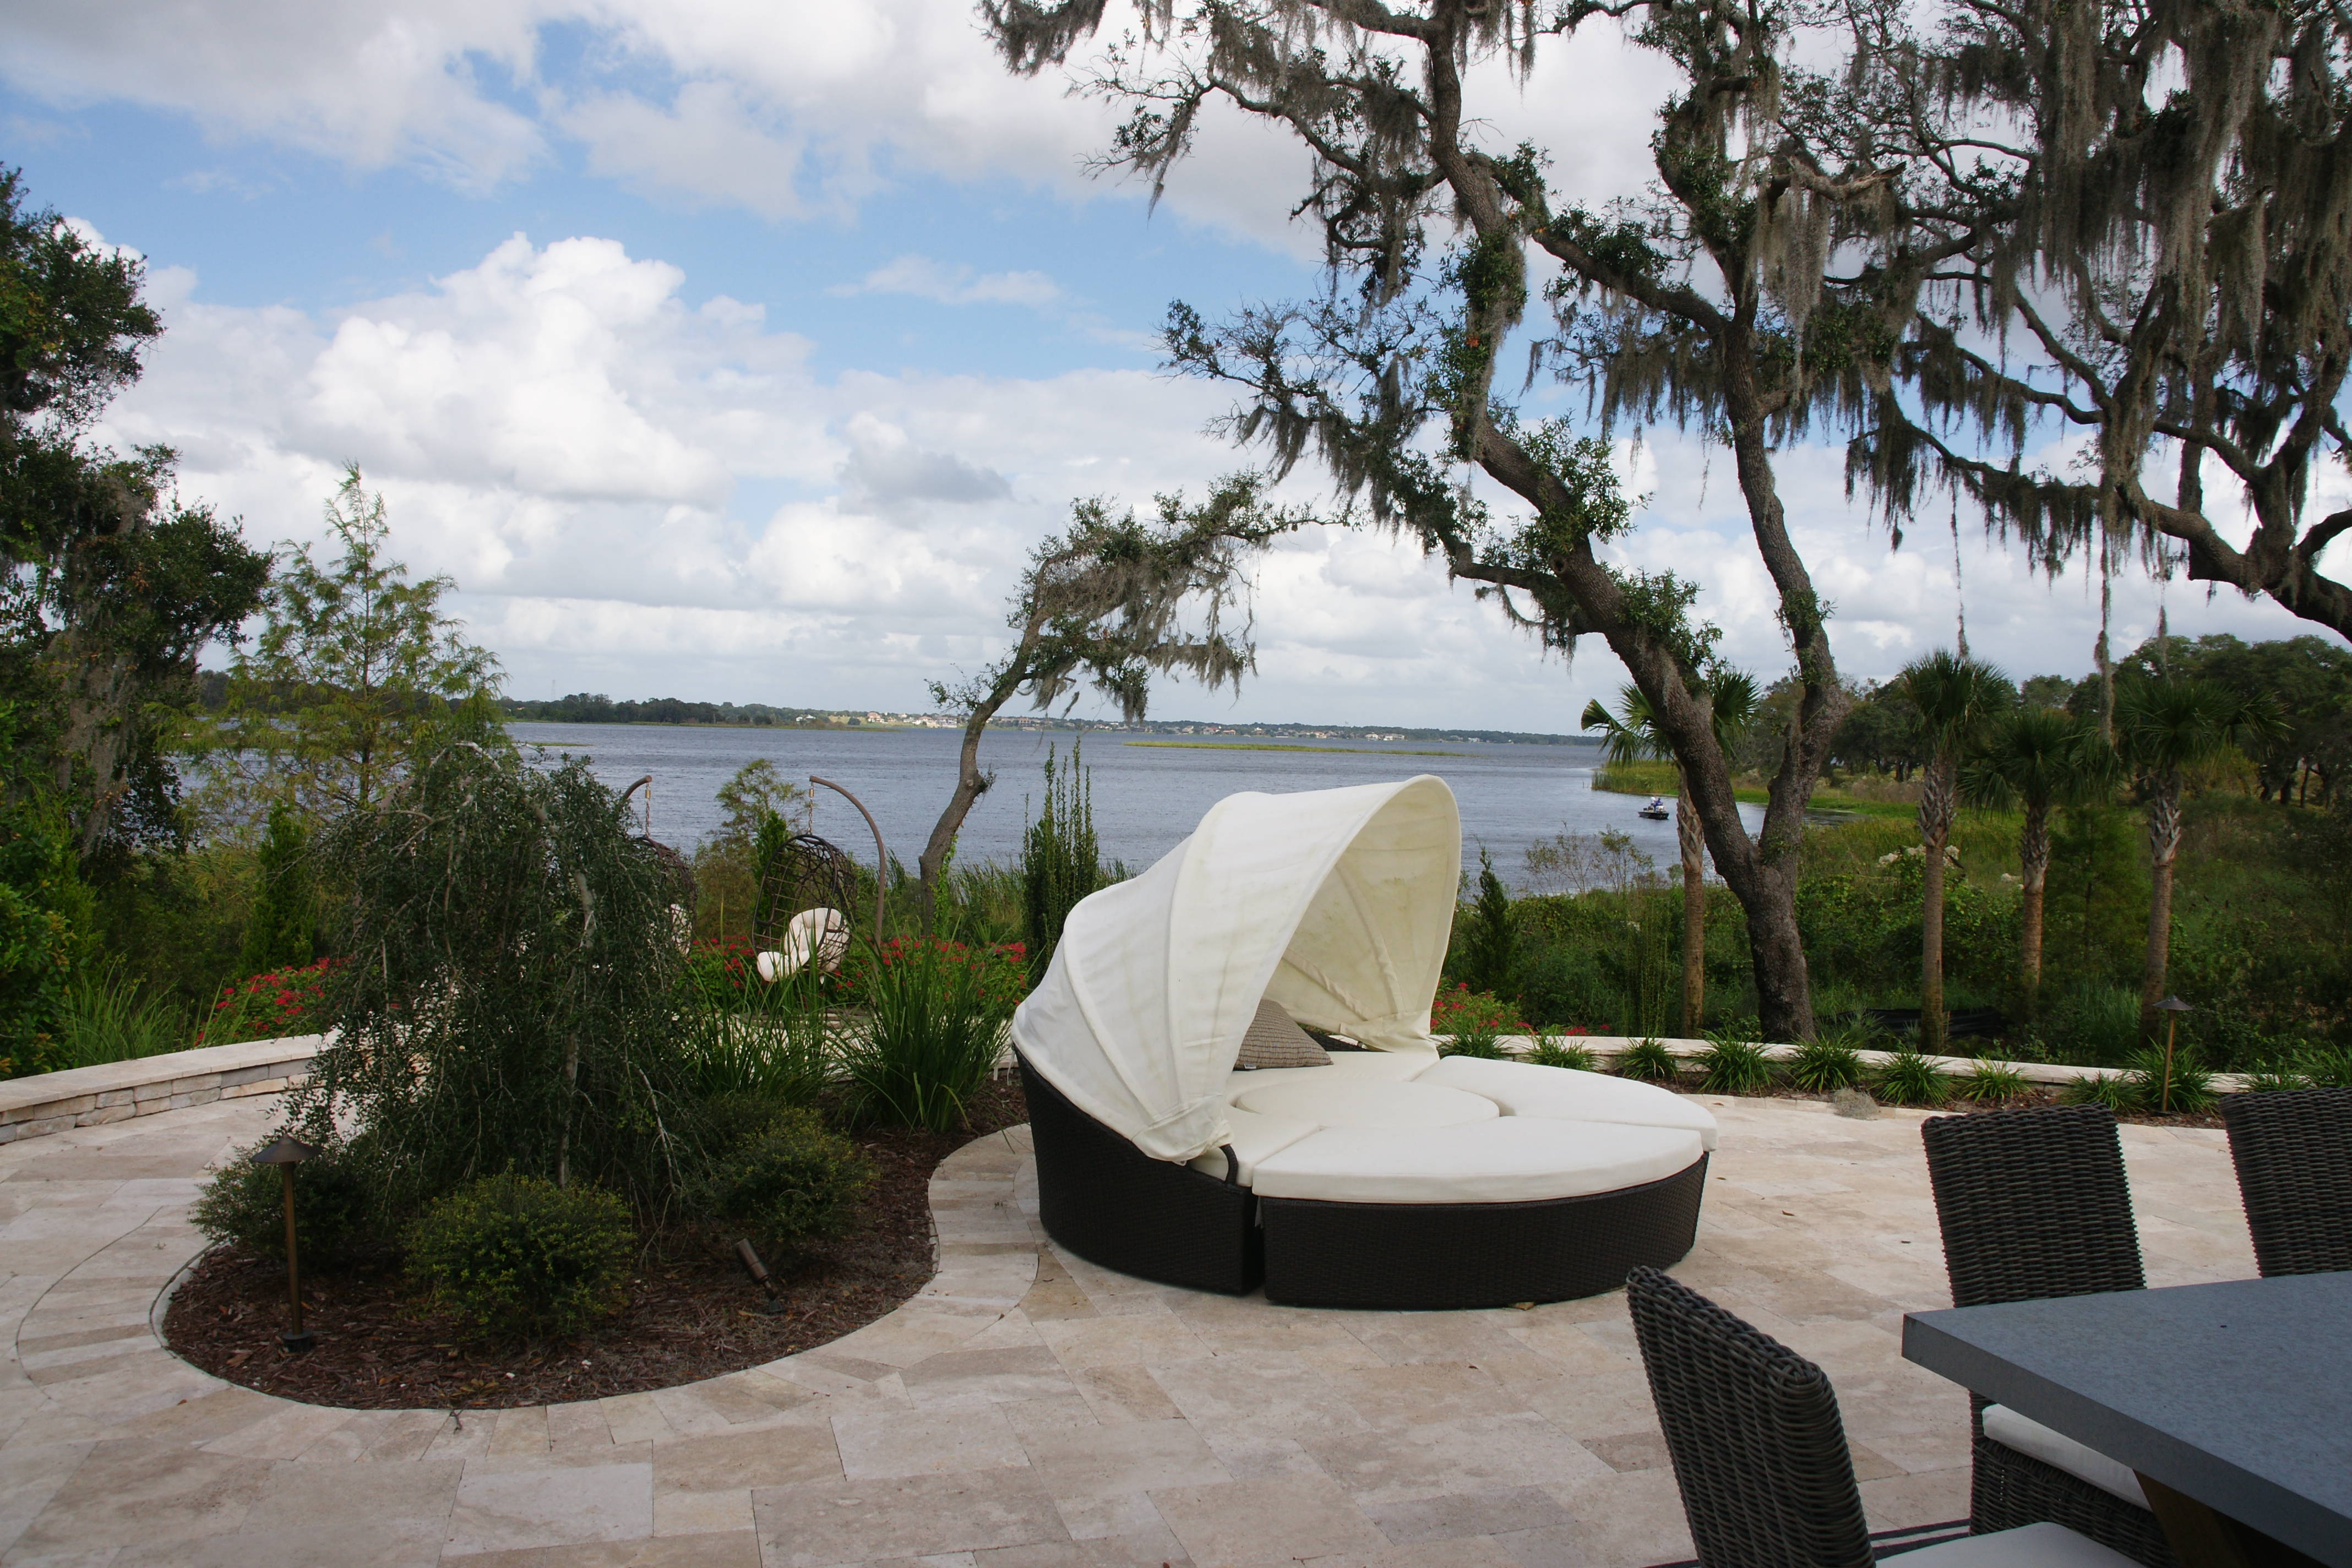 waterside community winter garden real estate